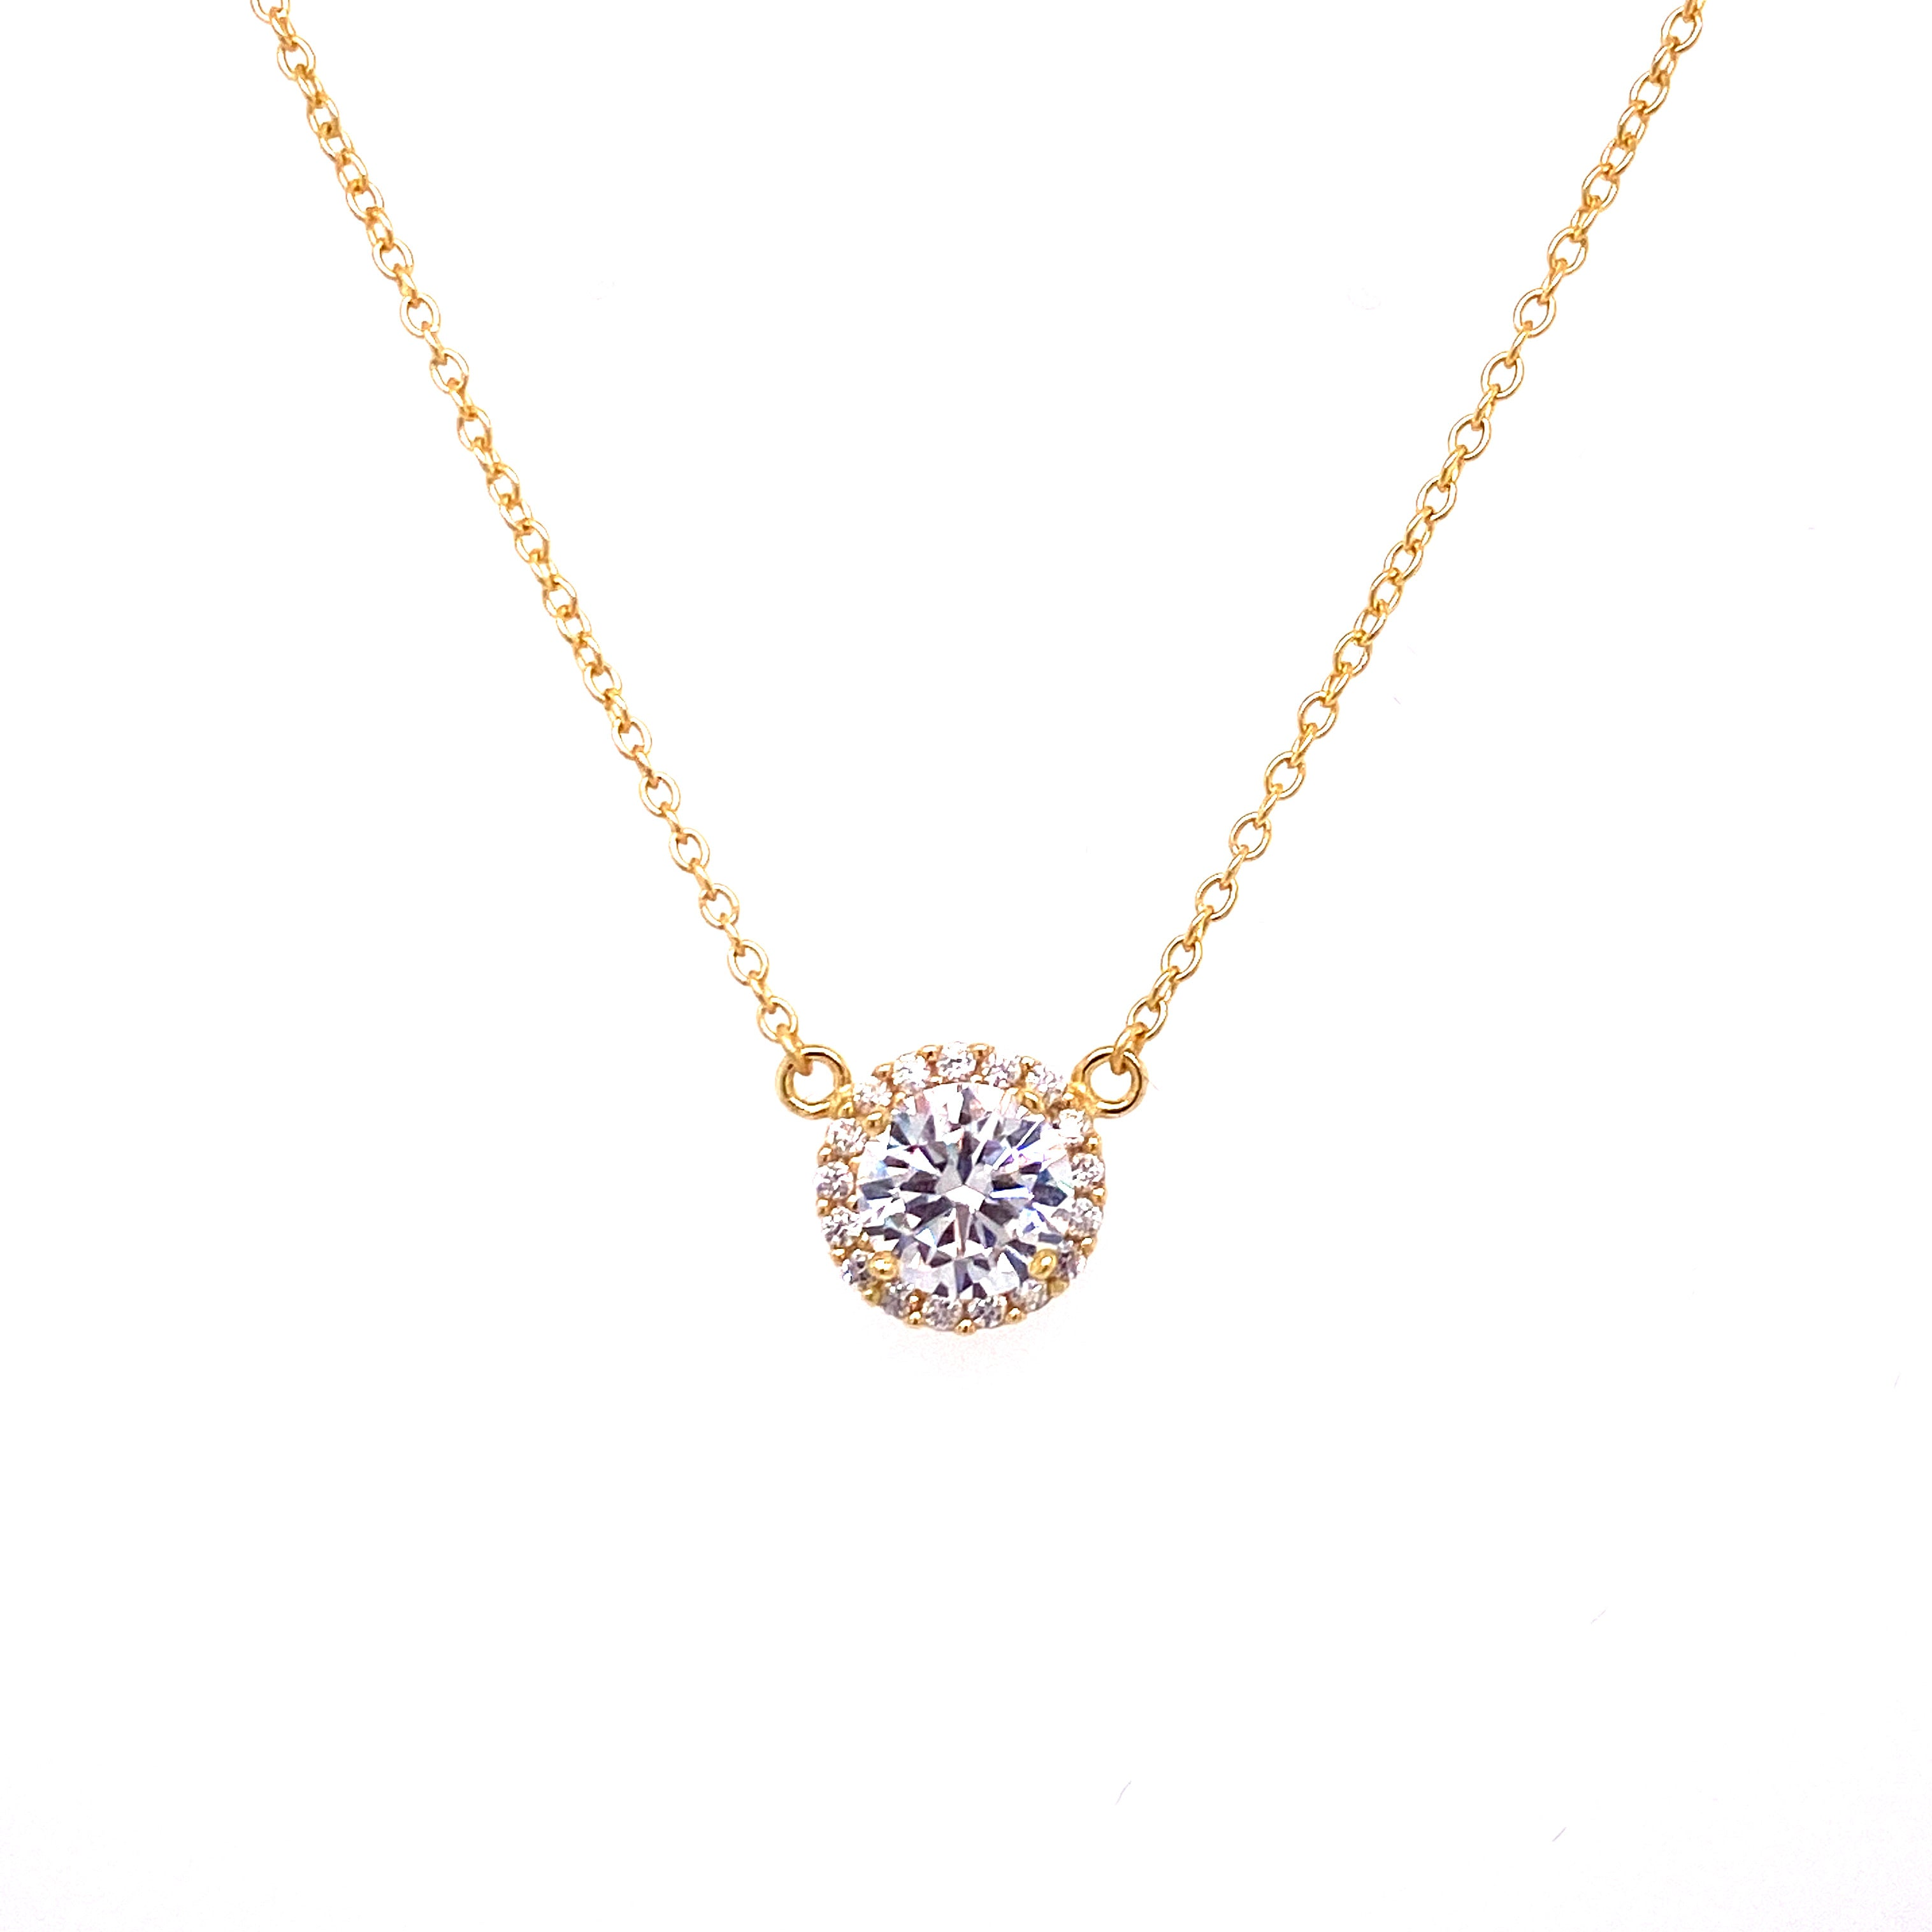 Solitaire Single Row Pave Necklace